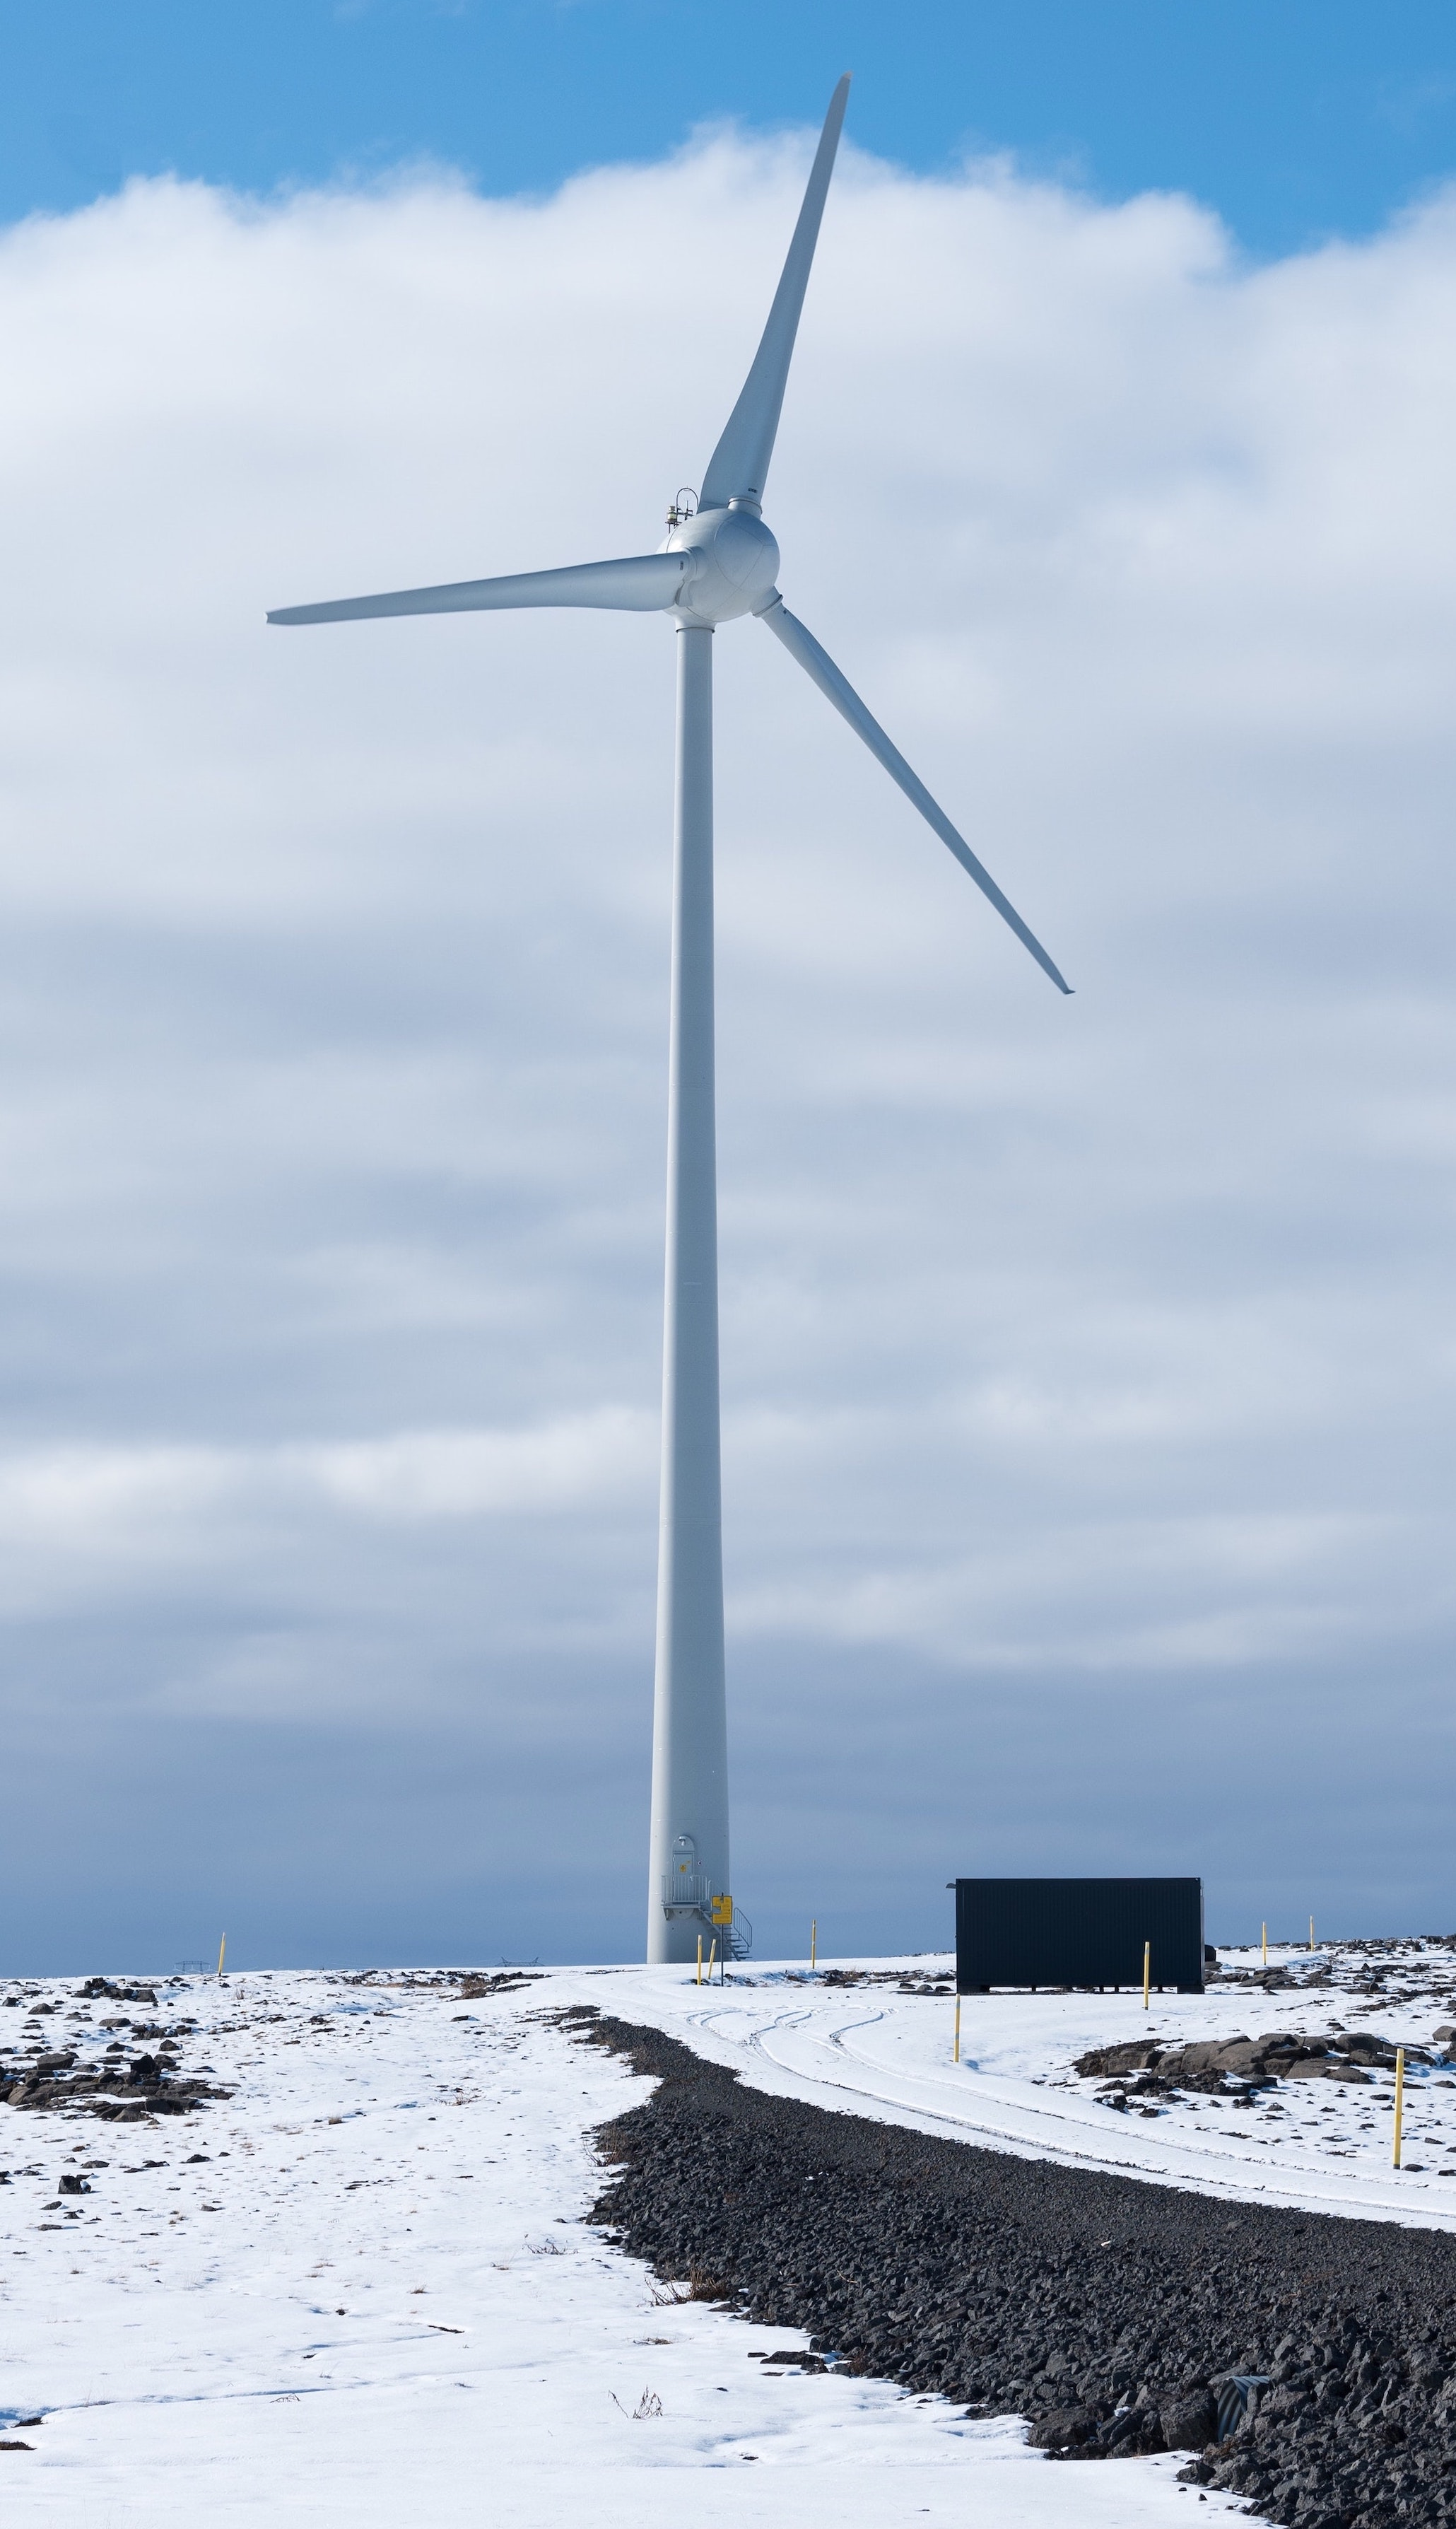 Picture of a wind turbine in a snowy landscape.